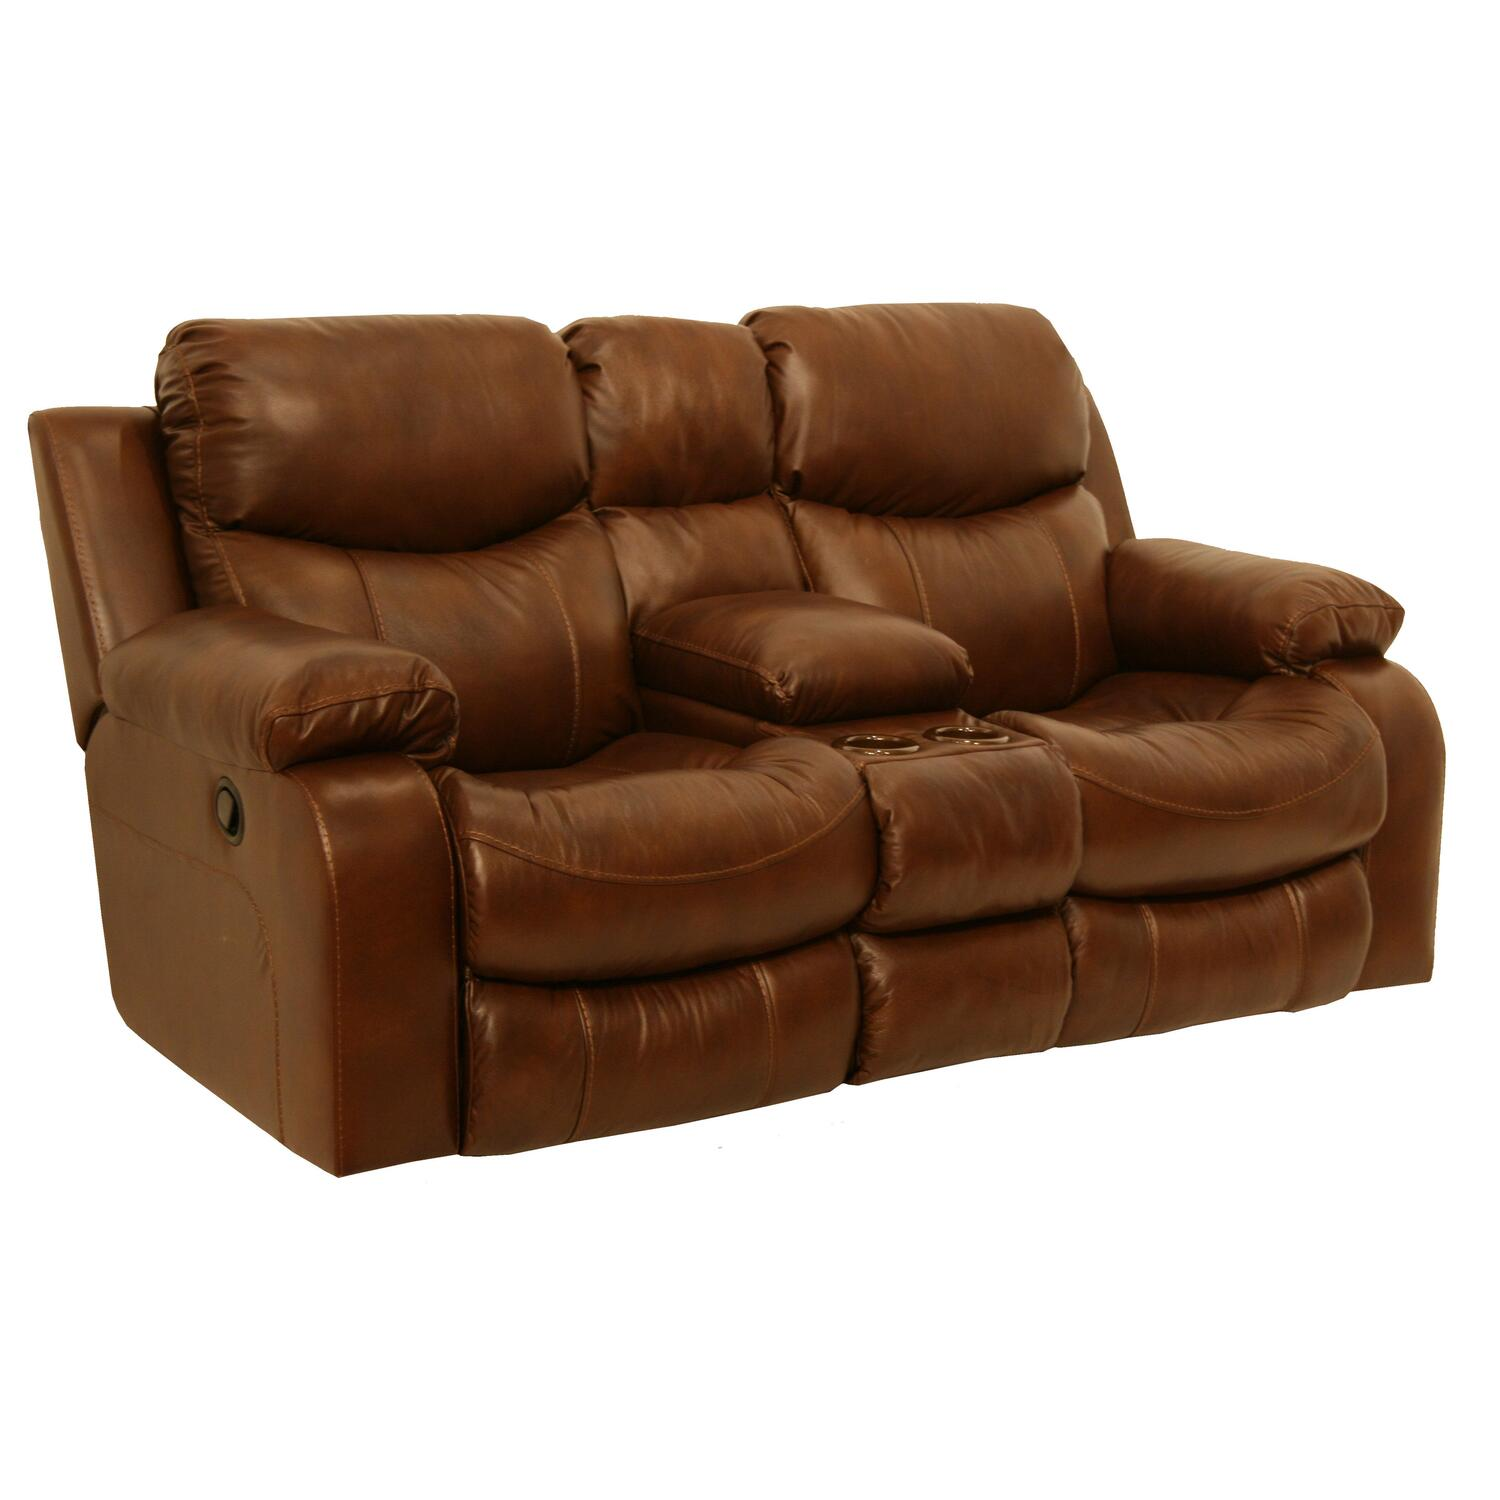 Catnapper Dallas Reclining Console Loveseat By Oj Commerce 1 1